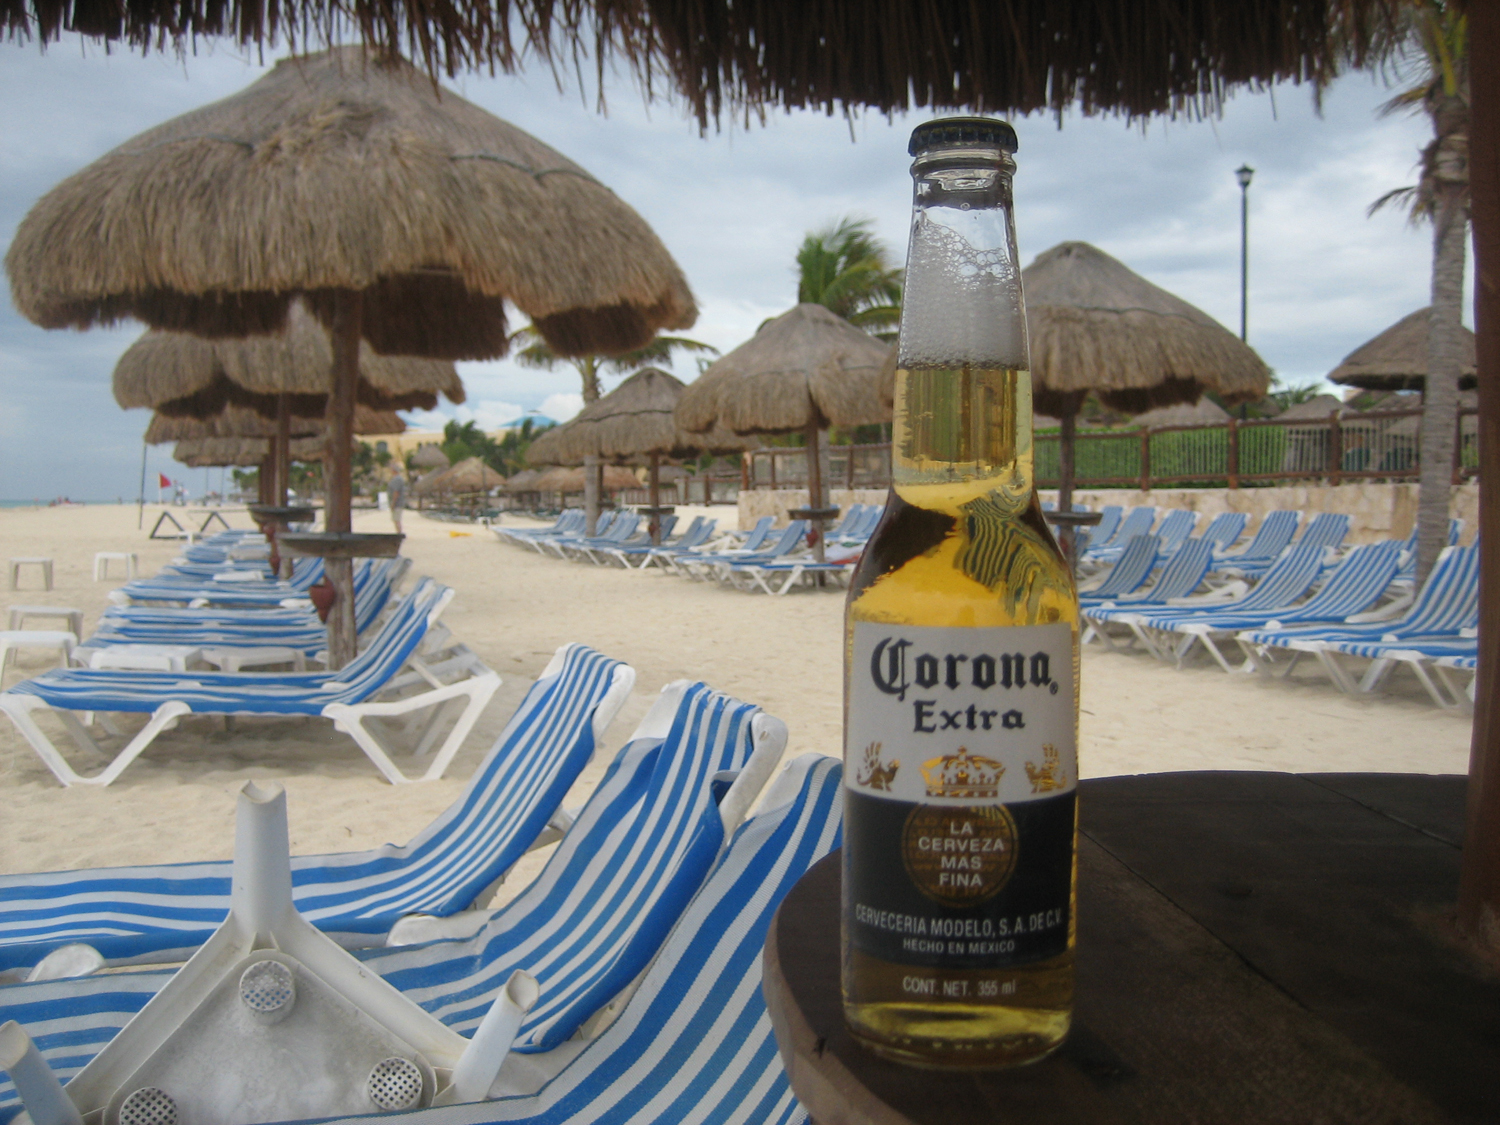 Corona beer encourages you to find your beach this summer.